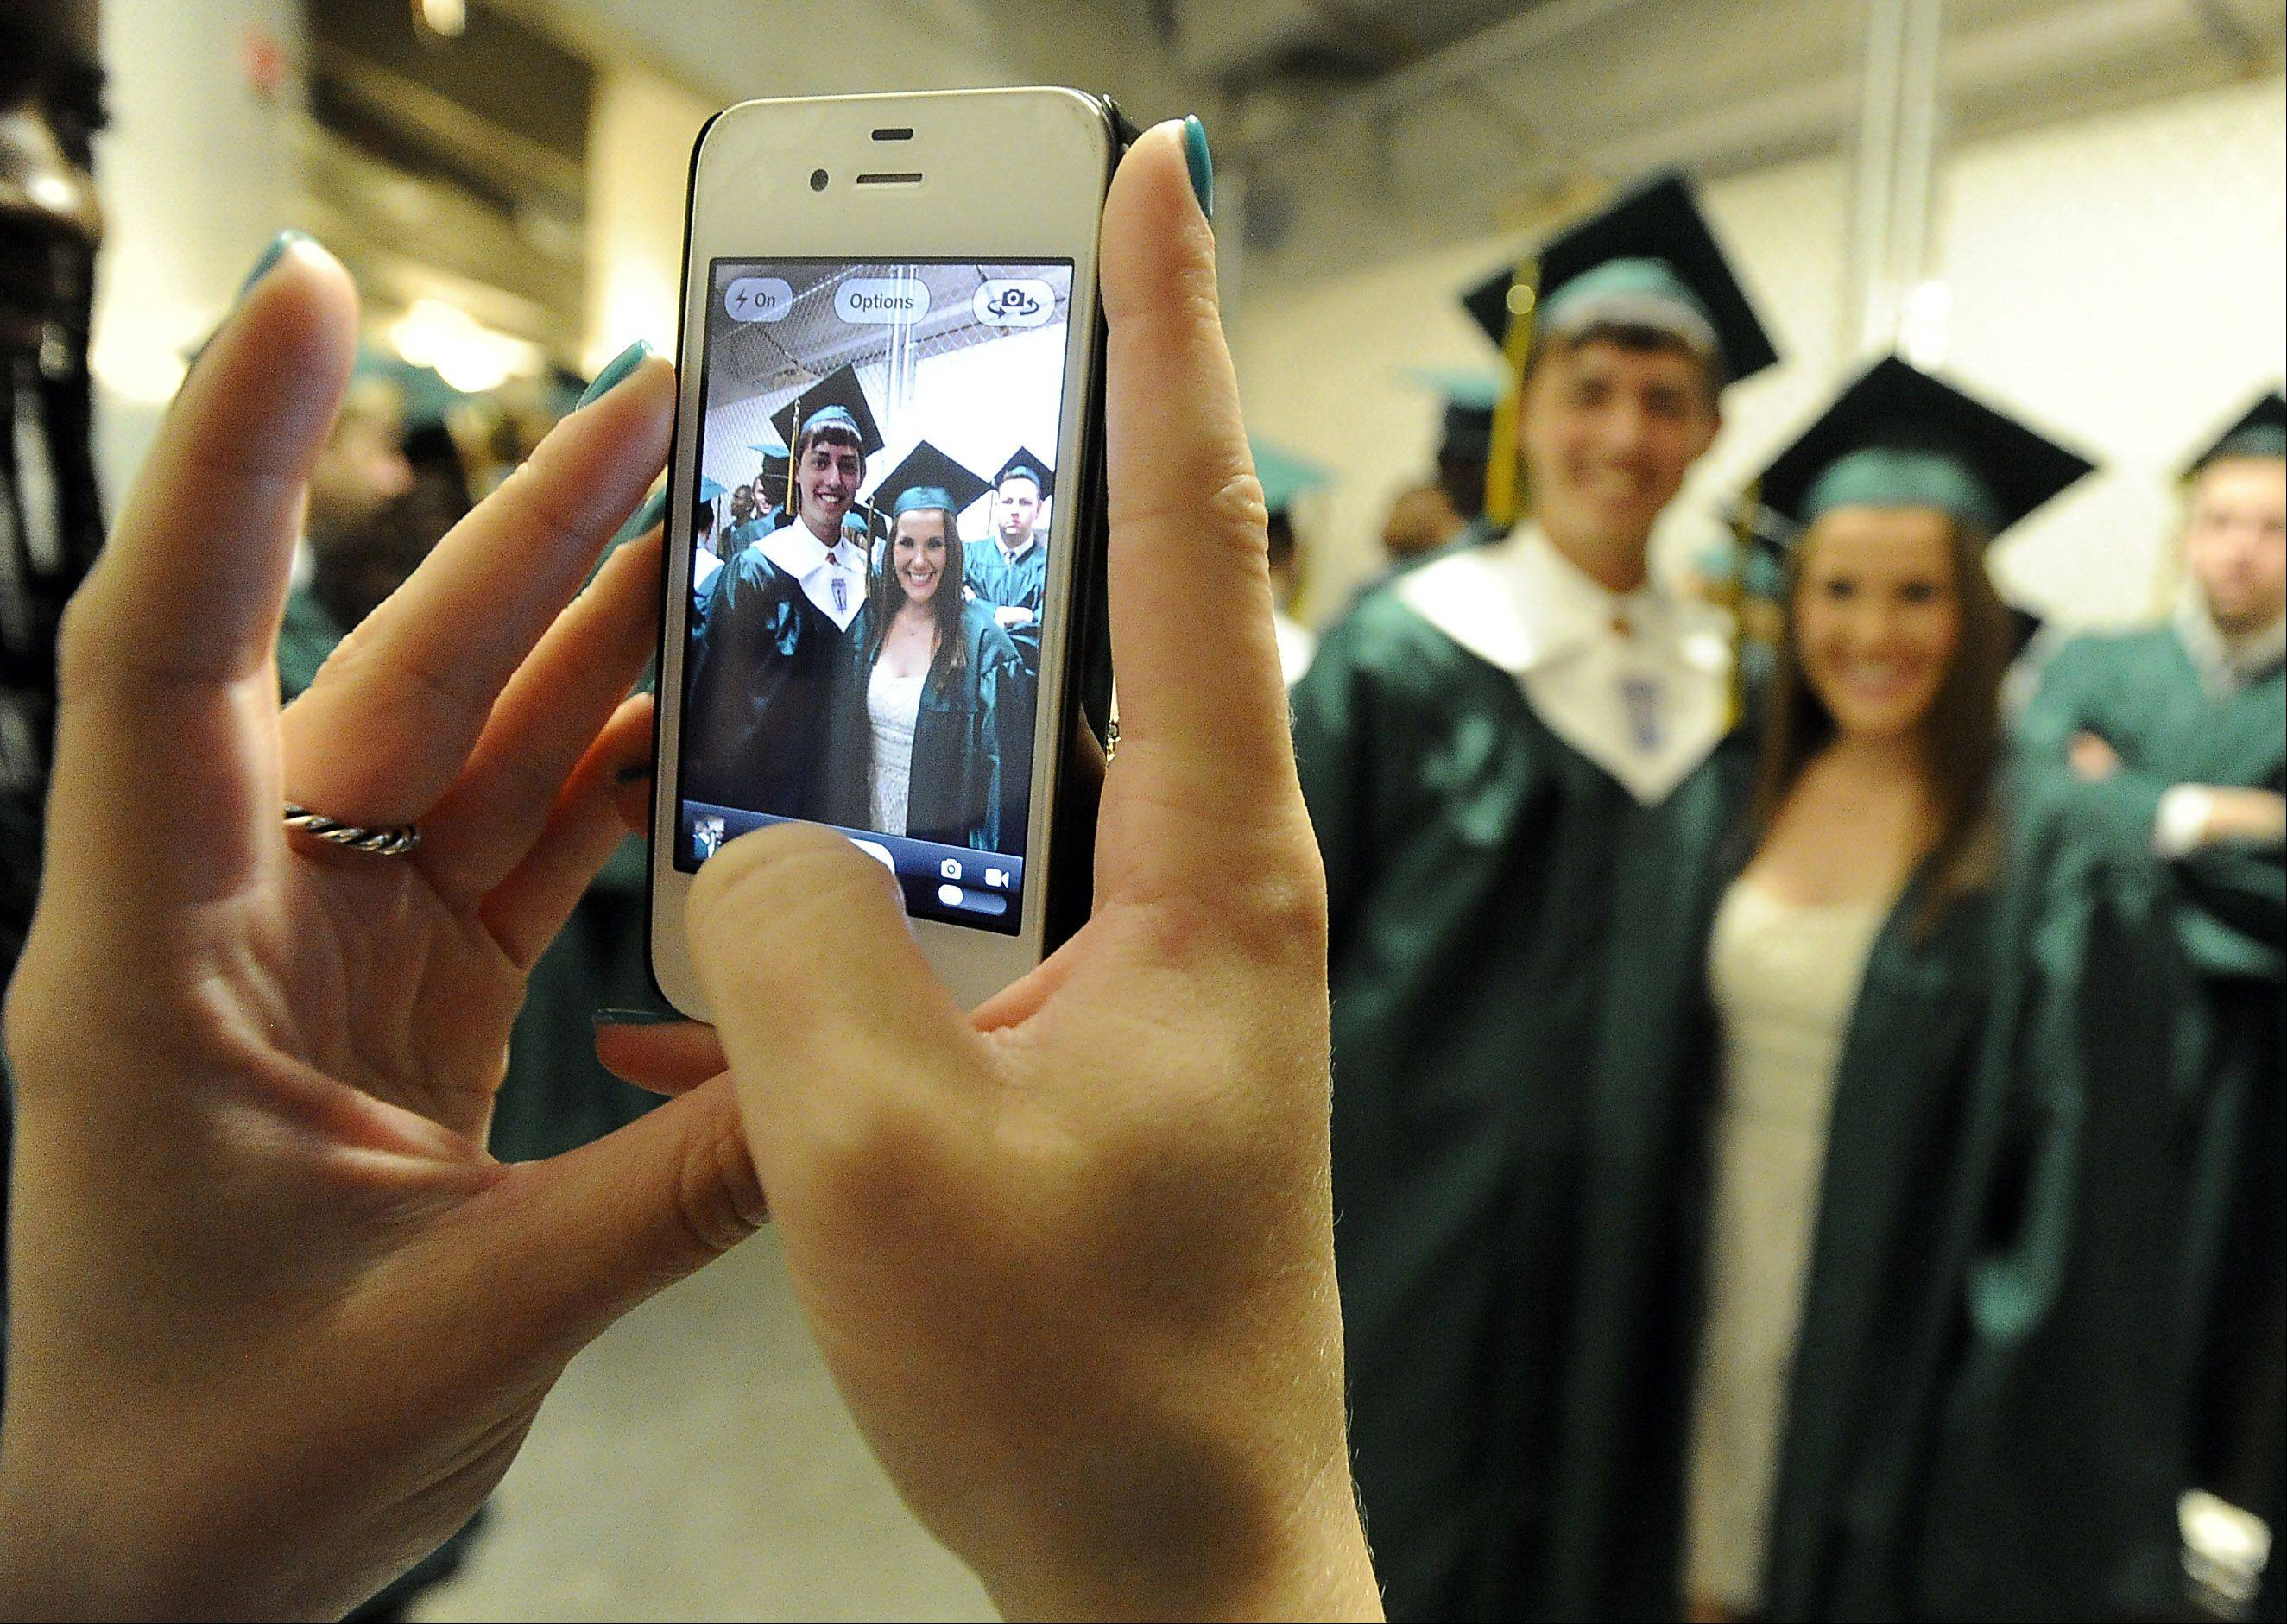 Melanie Bresler,18, and Scott Feldman,18, both of Buffalo Grove get their picture taken before their graduation by fellow classmate Kari Antman,18, of Buffalo Grove at the Stevenson High School Commencement Program at the Sears Centre on Thursday.